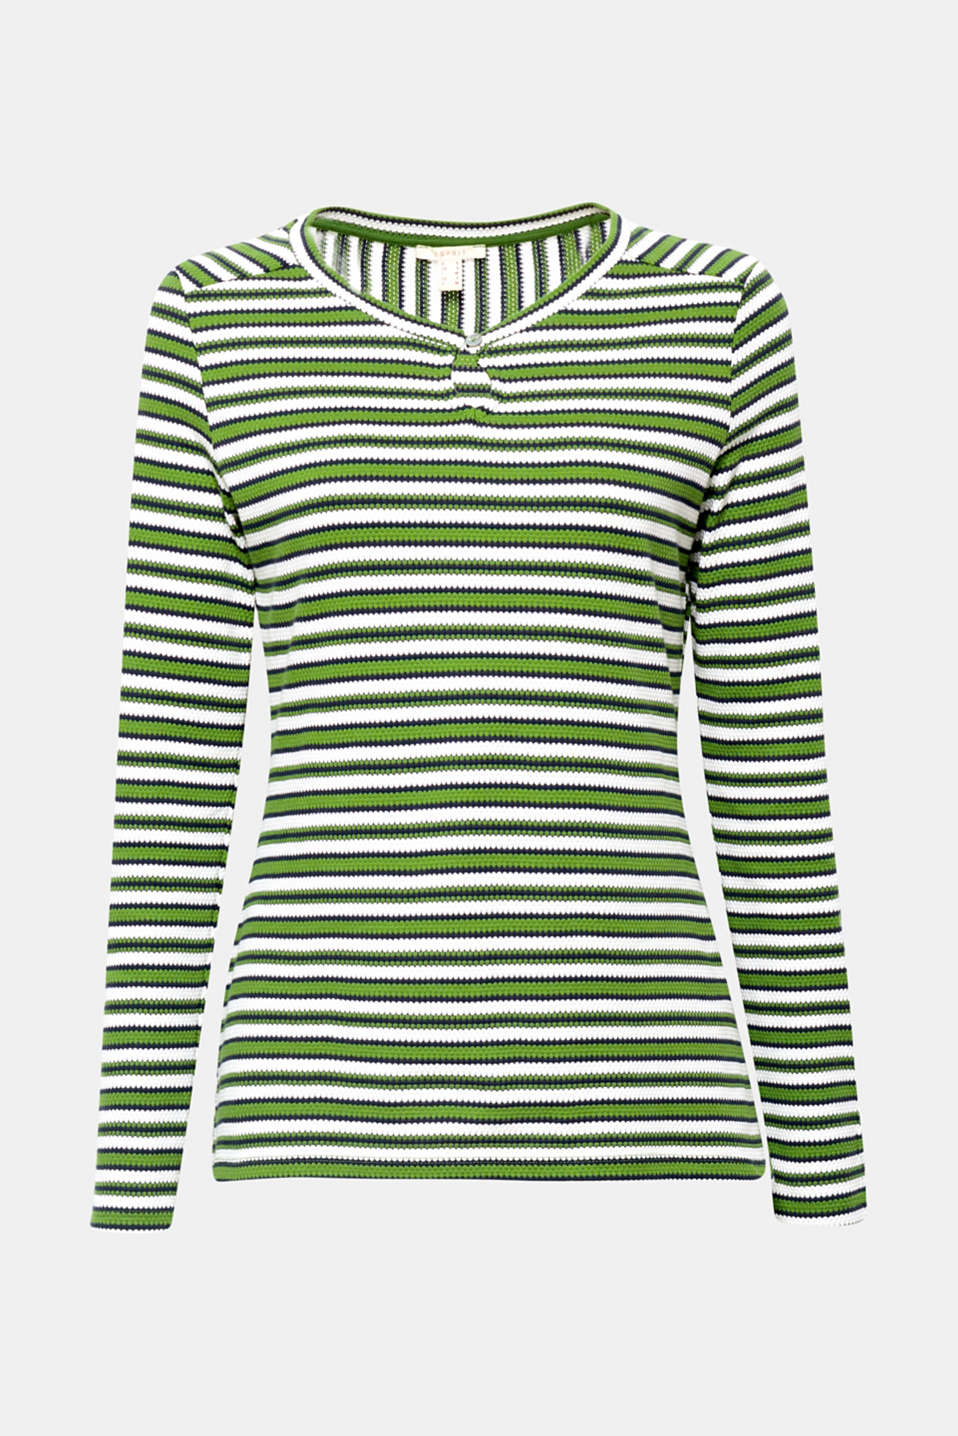 The keyhole cut-out and decorative buttons on the sleeve ends give this textured, striped long sleeve top its feminine charm!